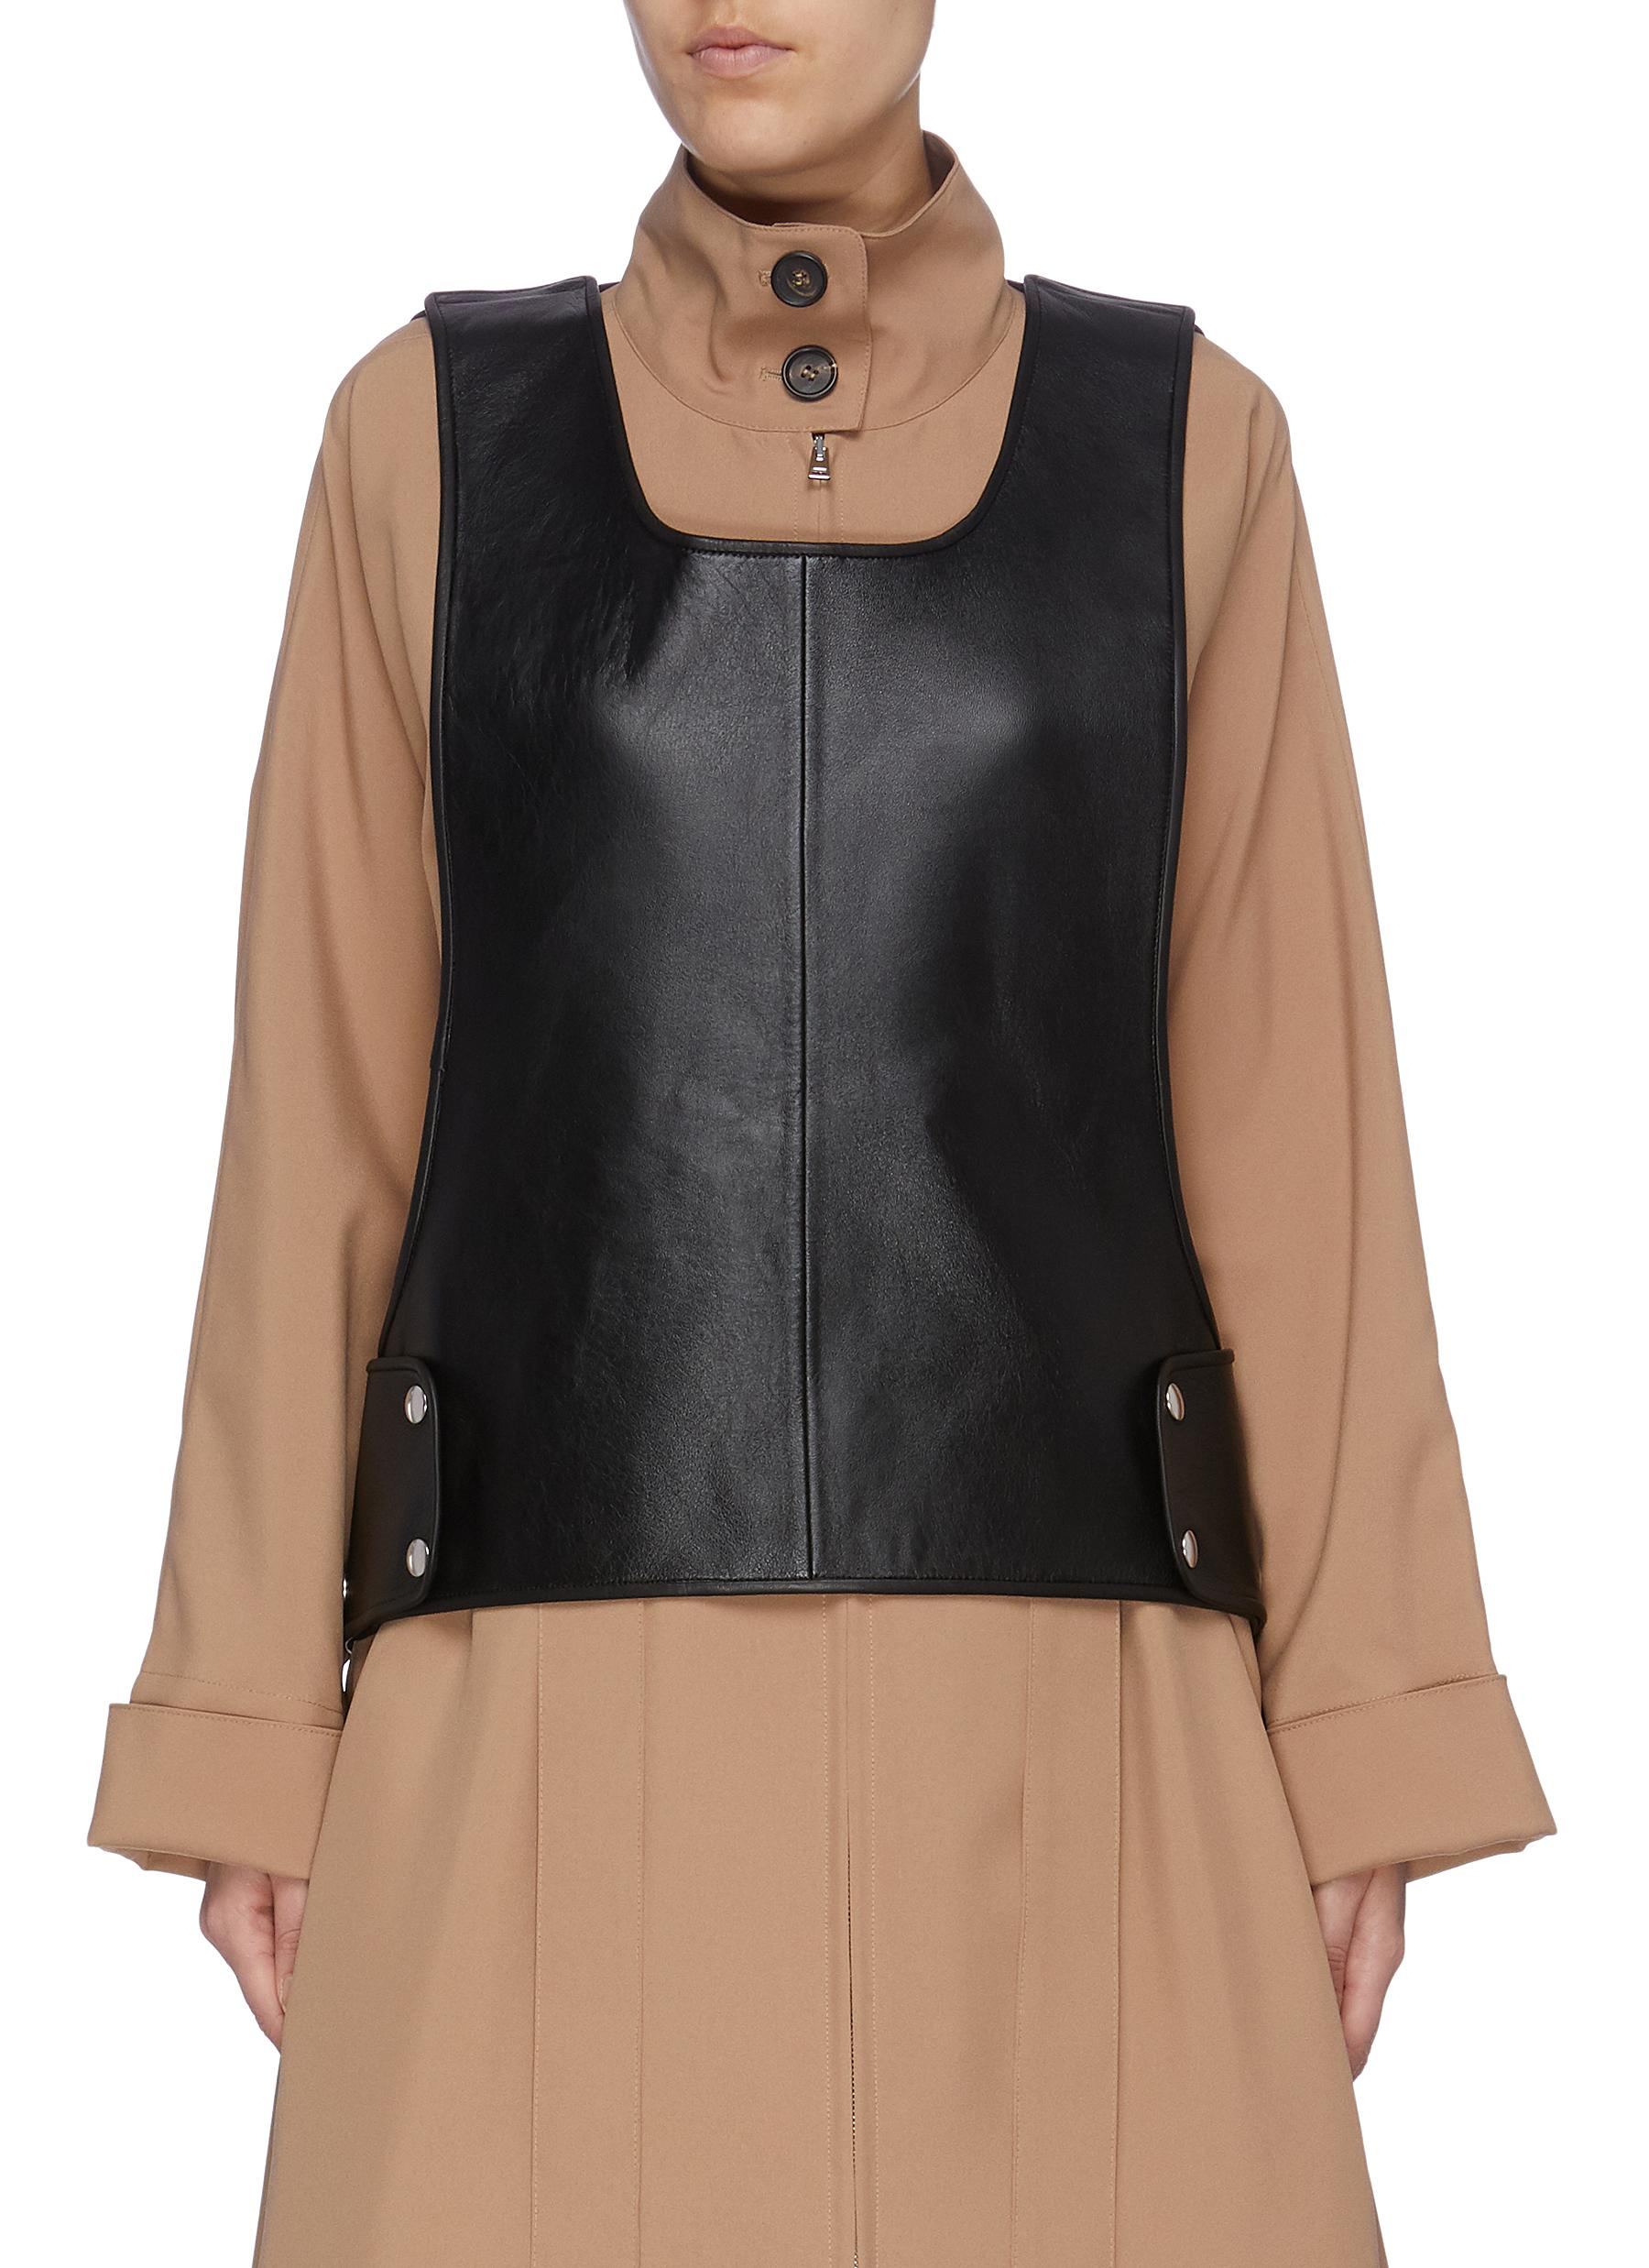 Snap button leather bib top by Plan C